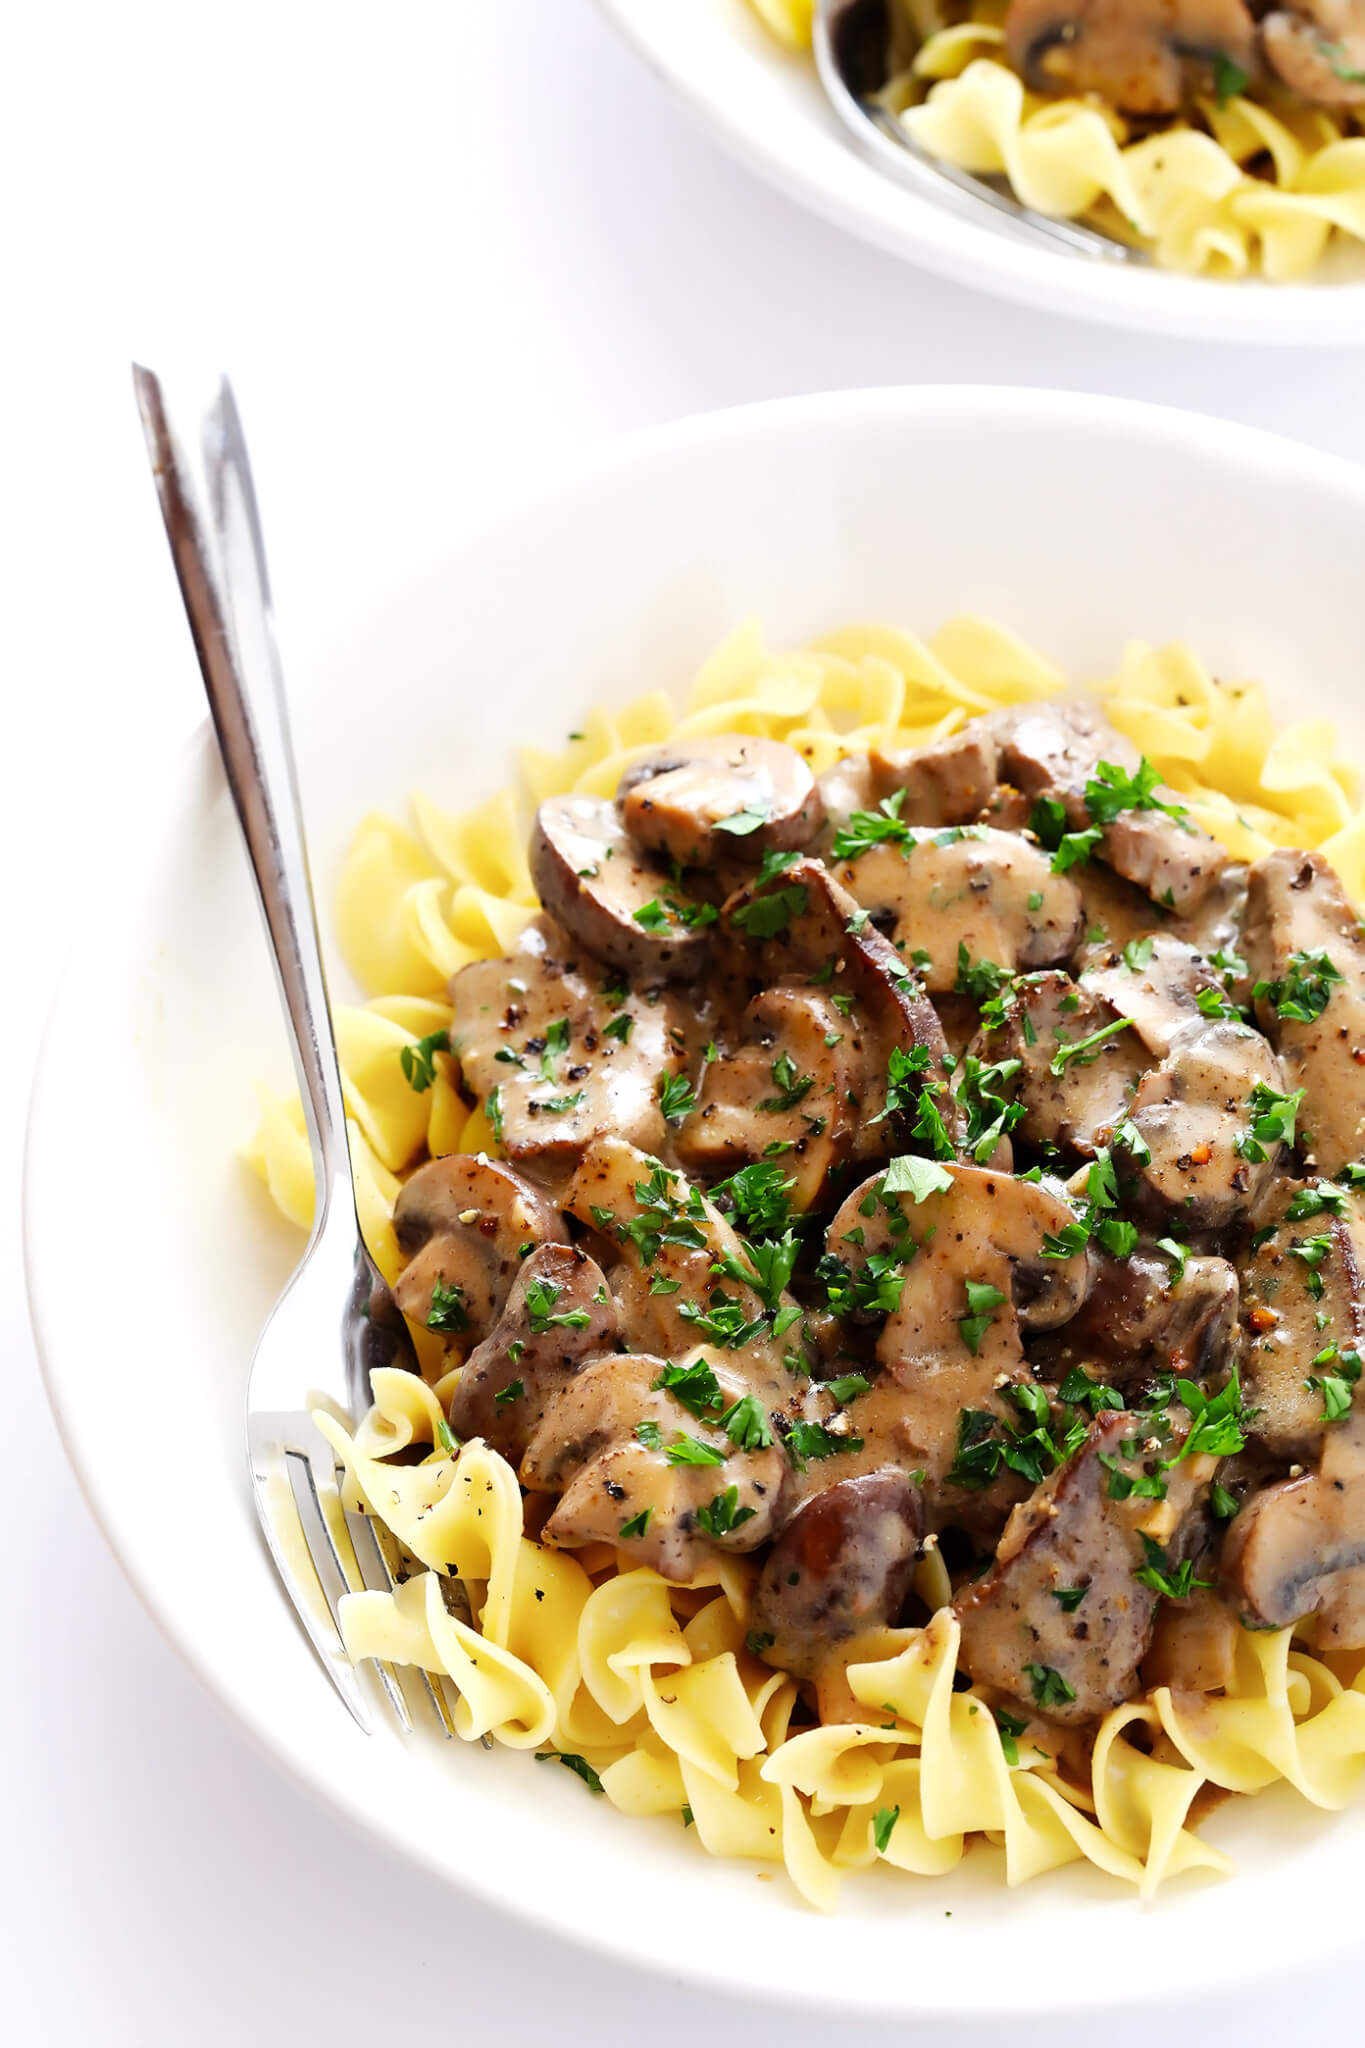 This 30-Minute Beef Stroganoff recipe is quick and easy to make, full of creamy steak and mushrooms, and SO savory and delicious! Feel free to serve over pasta, or rice, zucchini noodles -- you name it.